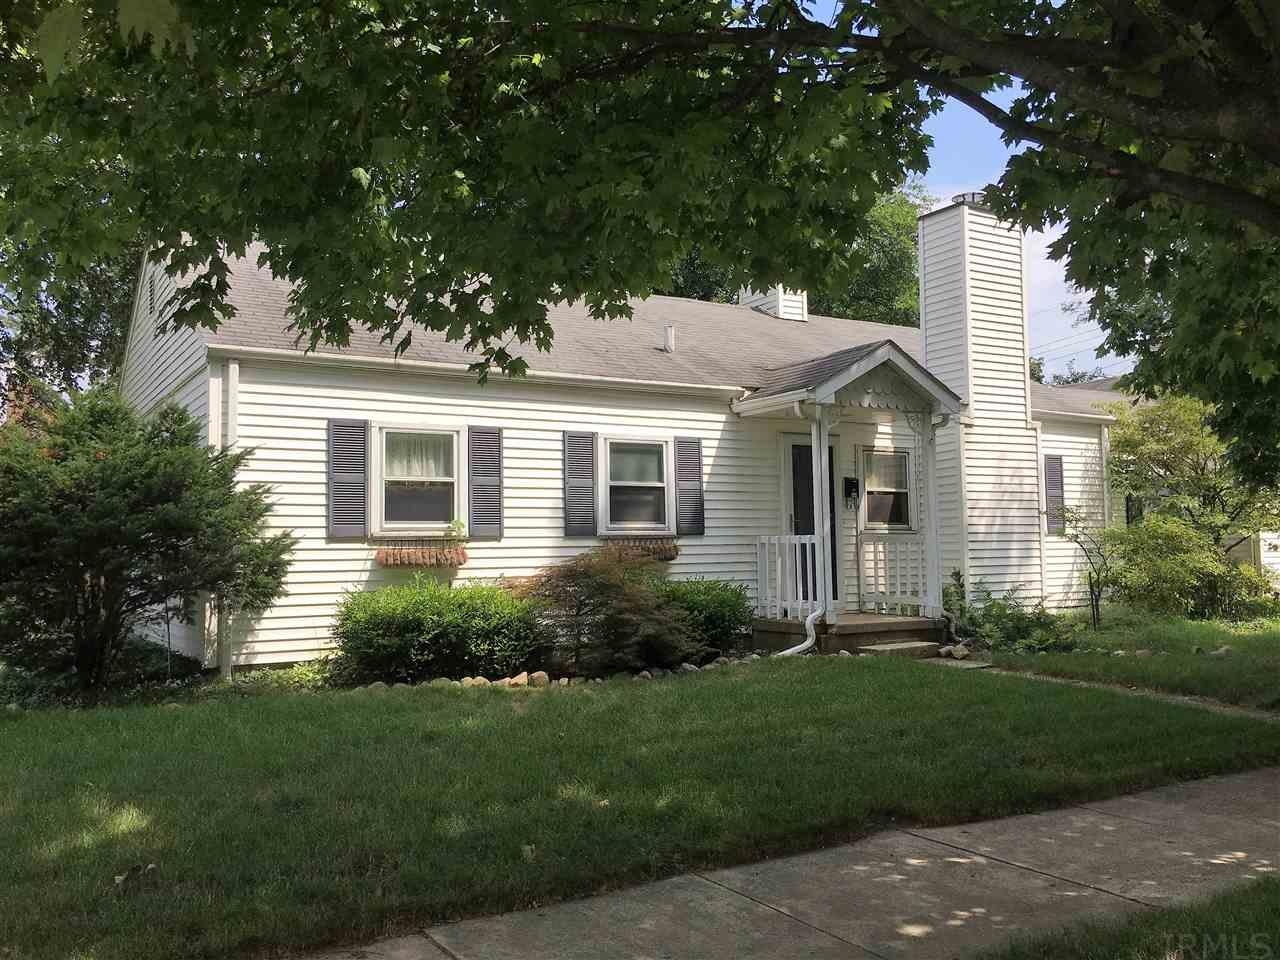 444 N Esther, South Bend, IN 46617